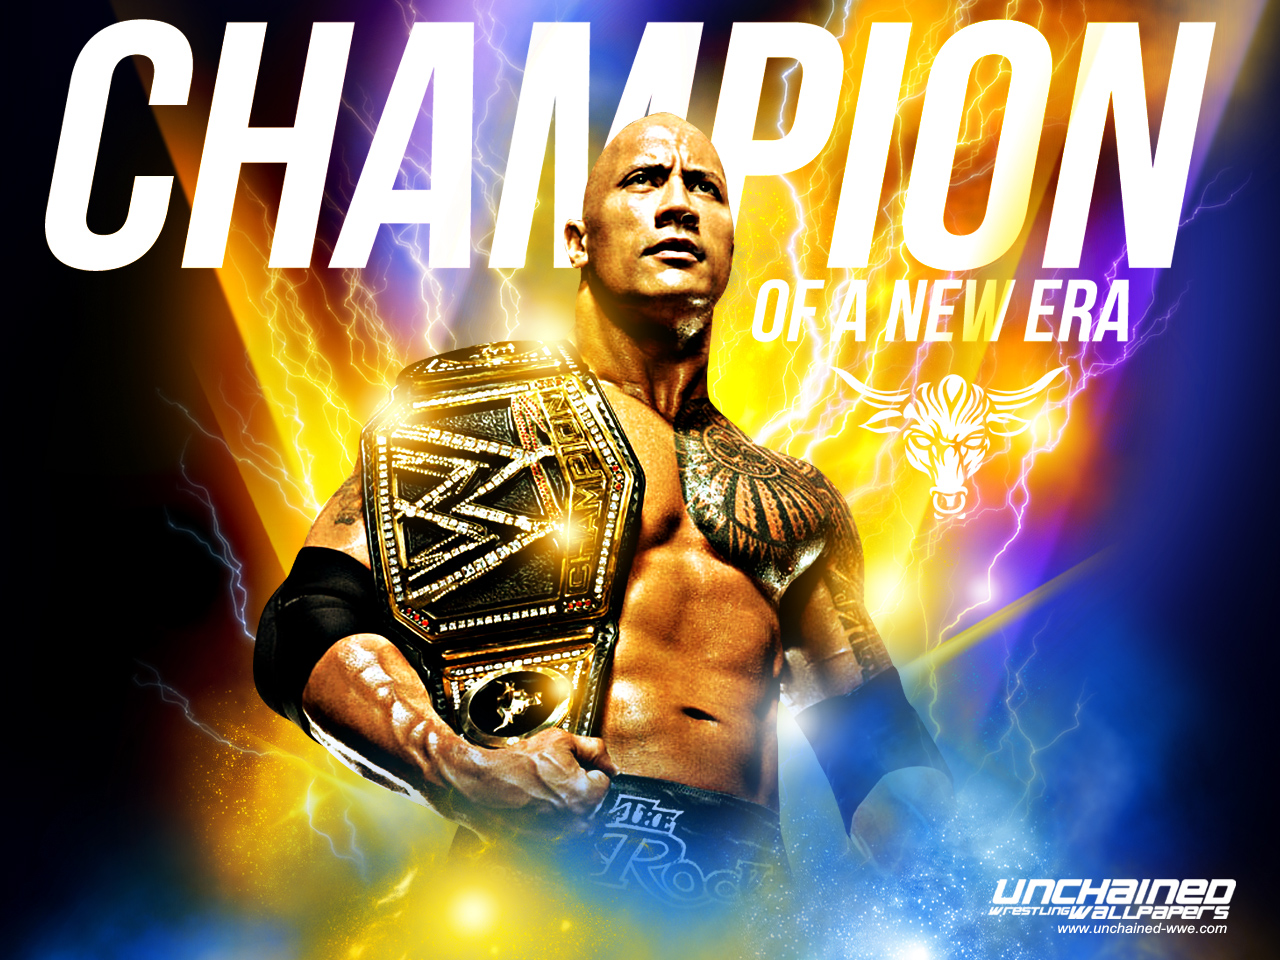 The Rock Champion Of A New Era Dwayne The Rock Johnson 壁紙